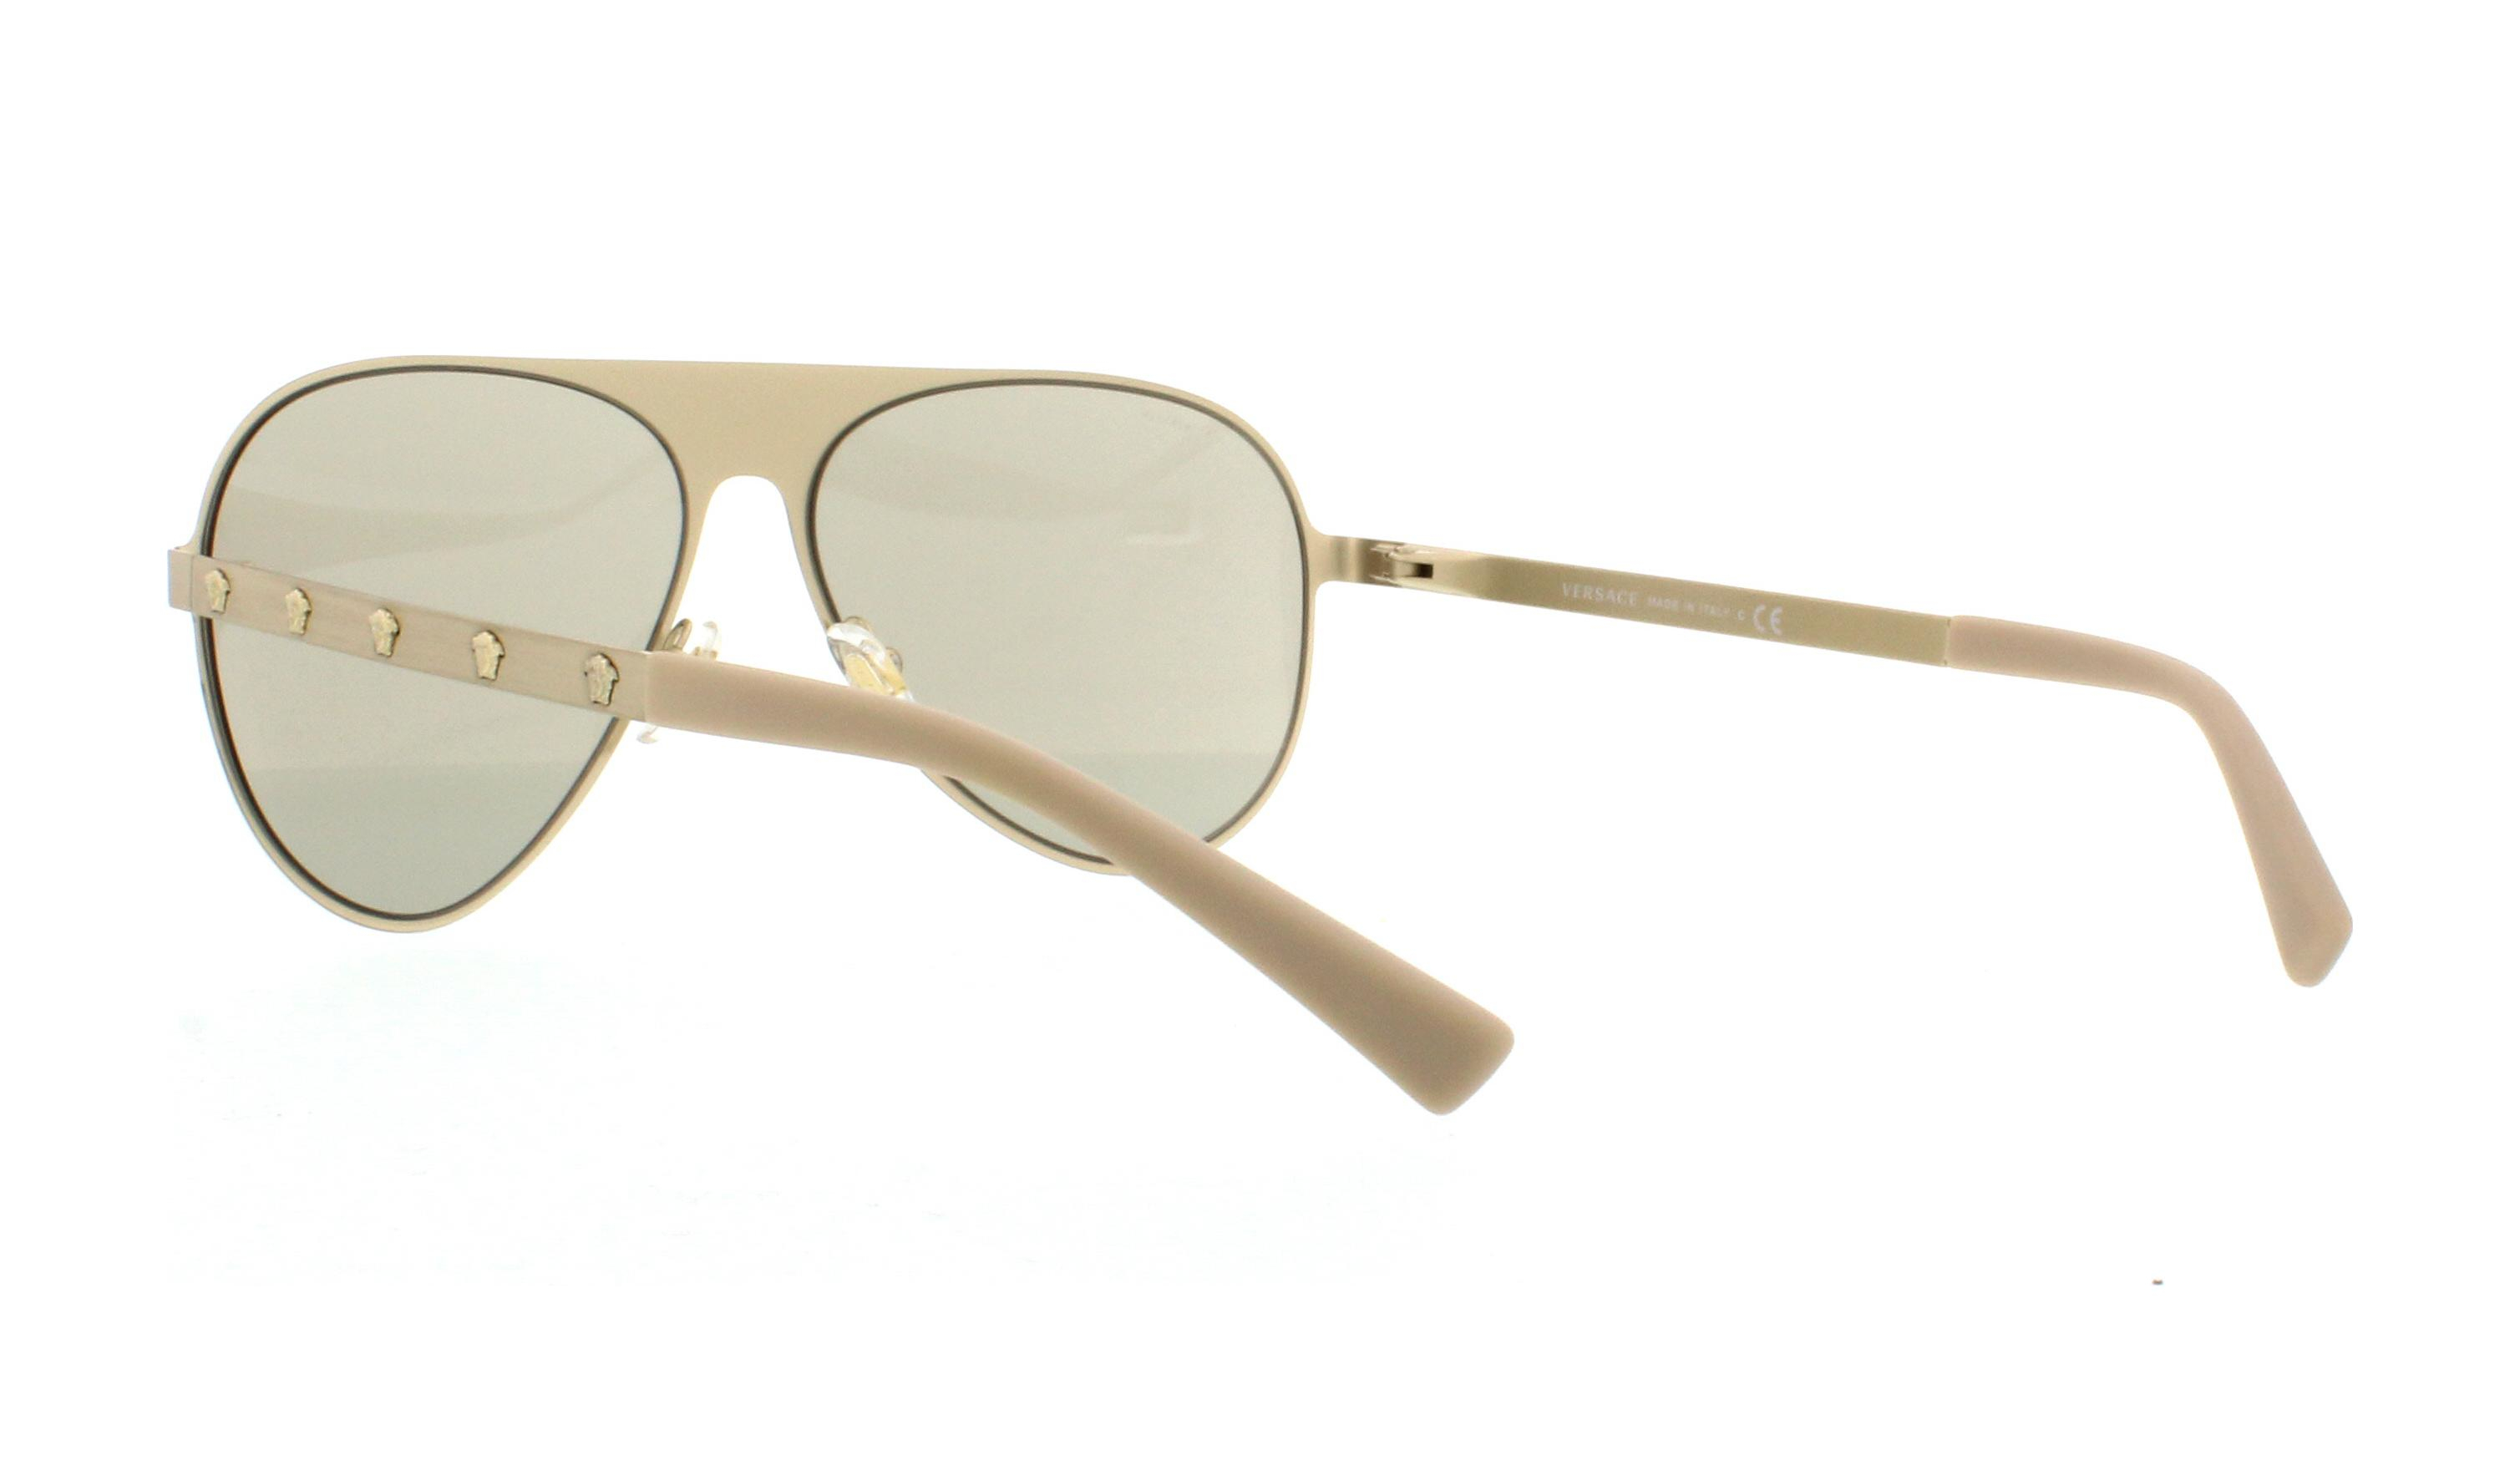 0077659e1139 NWT Versace Sunglasses VE 2189 1339  3 Brushed Pale Gold    Light Brown